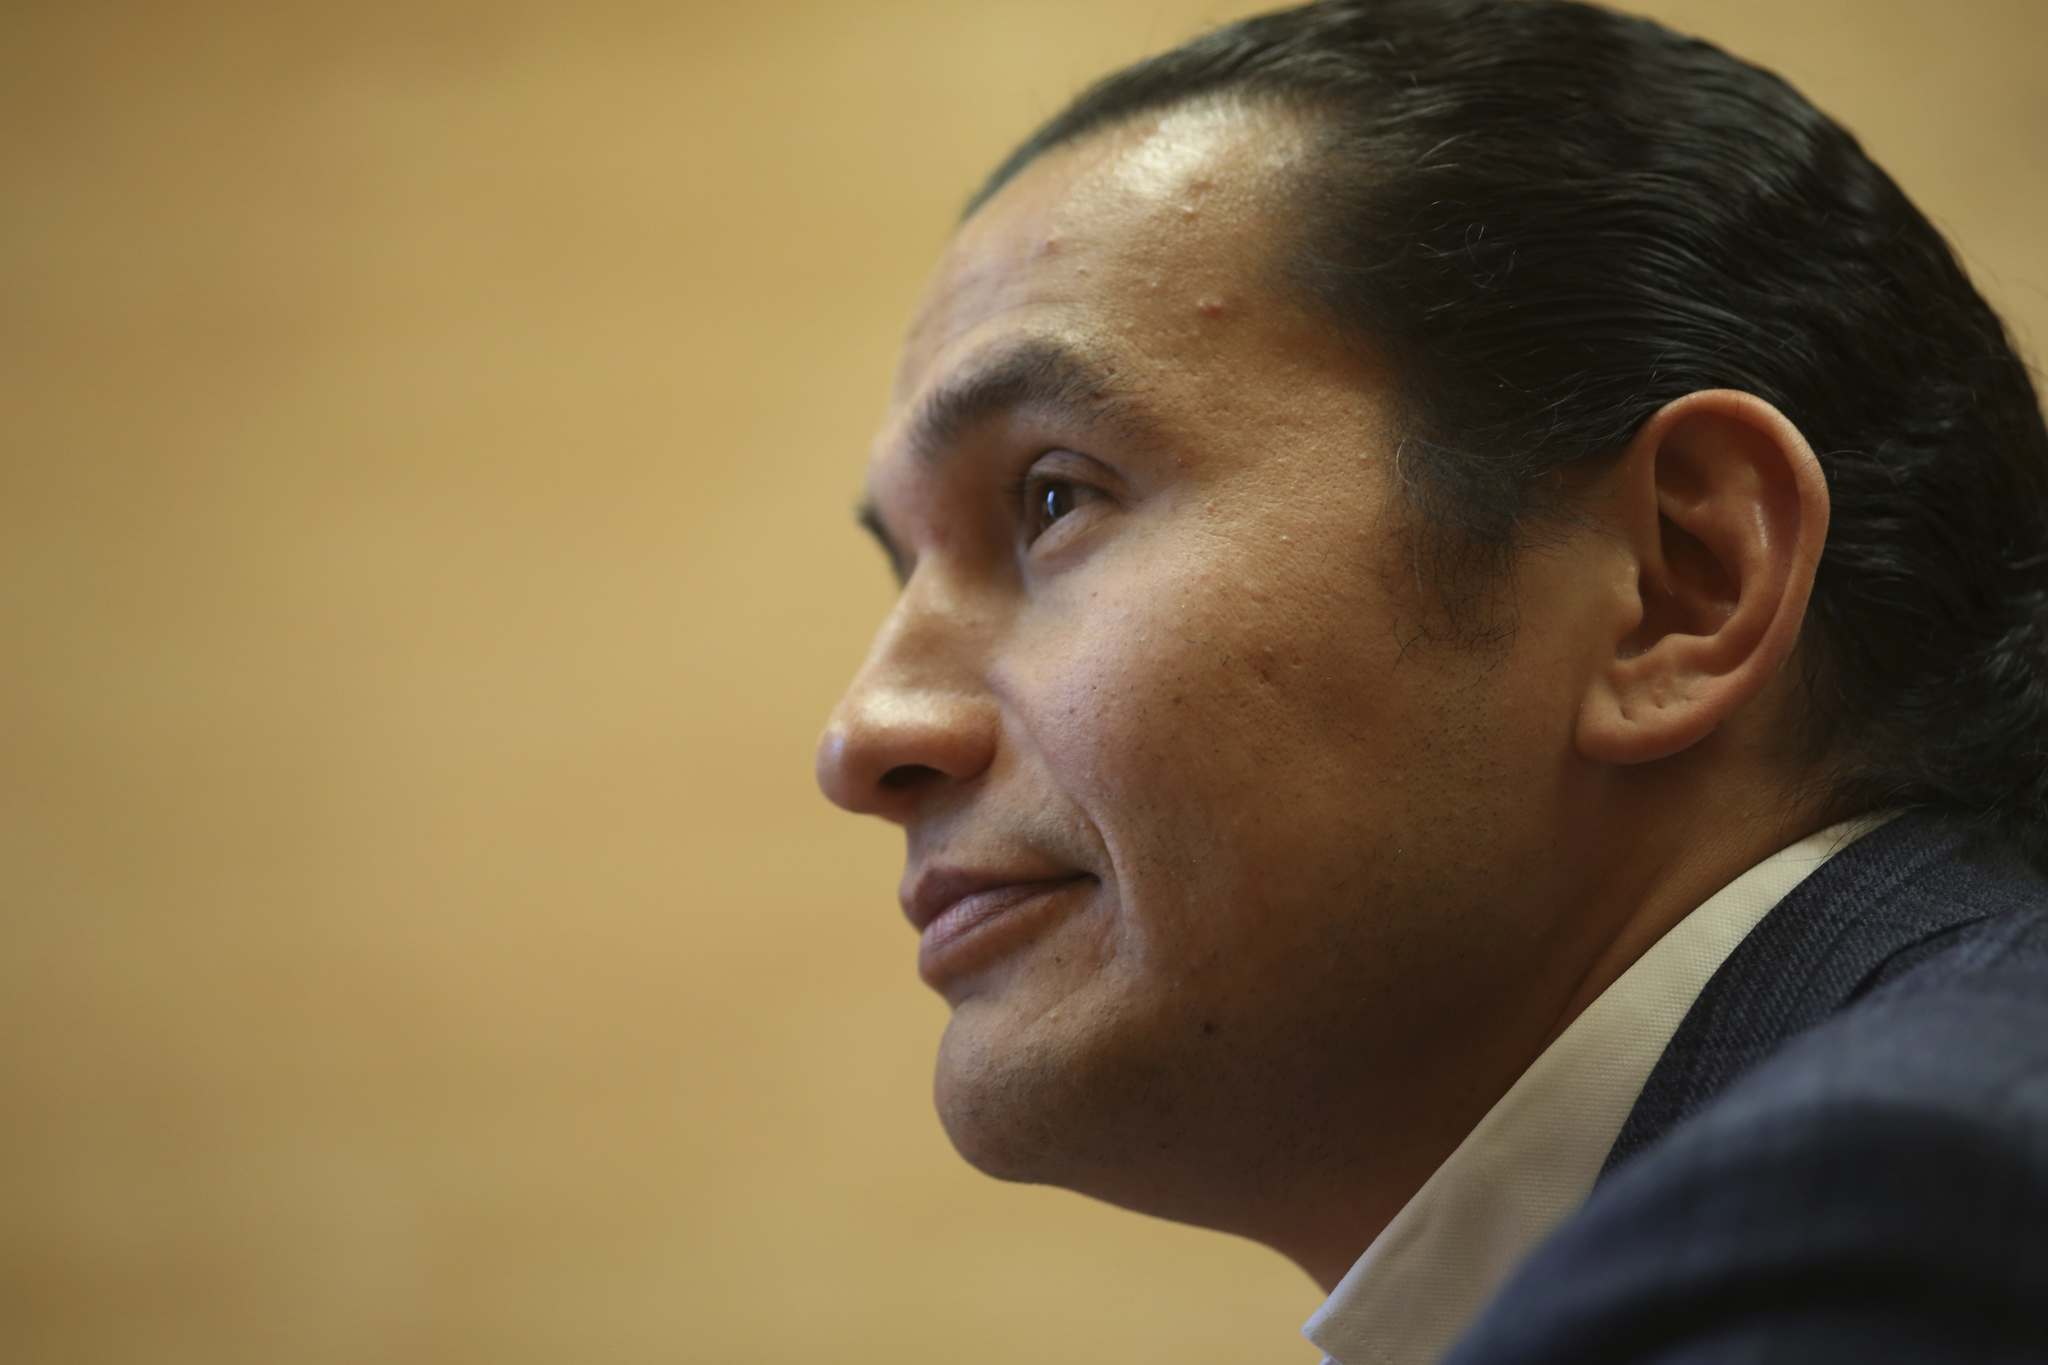 Matt Goerzen/The Brandon Sun Files</p><p>NDP Leader Wab Kinew listed dealing with methamphetamine addictions near the top of his wish list for the provincial budget.</p>